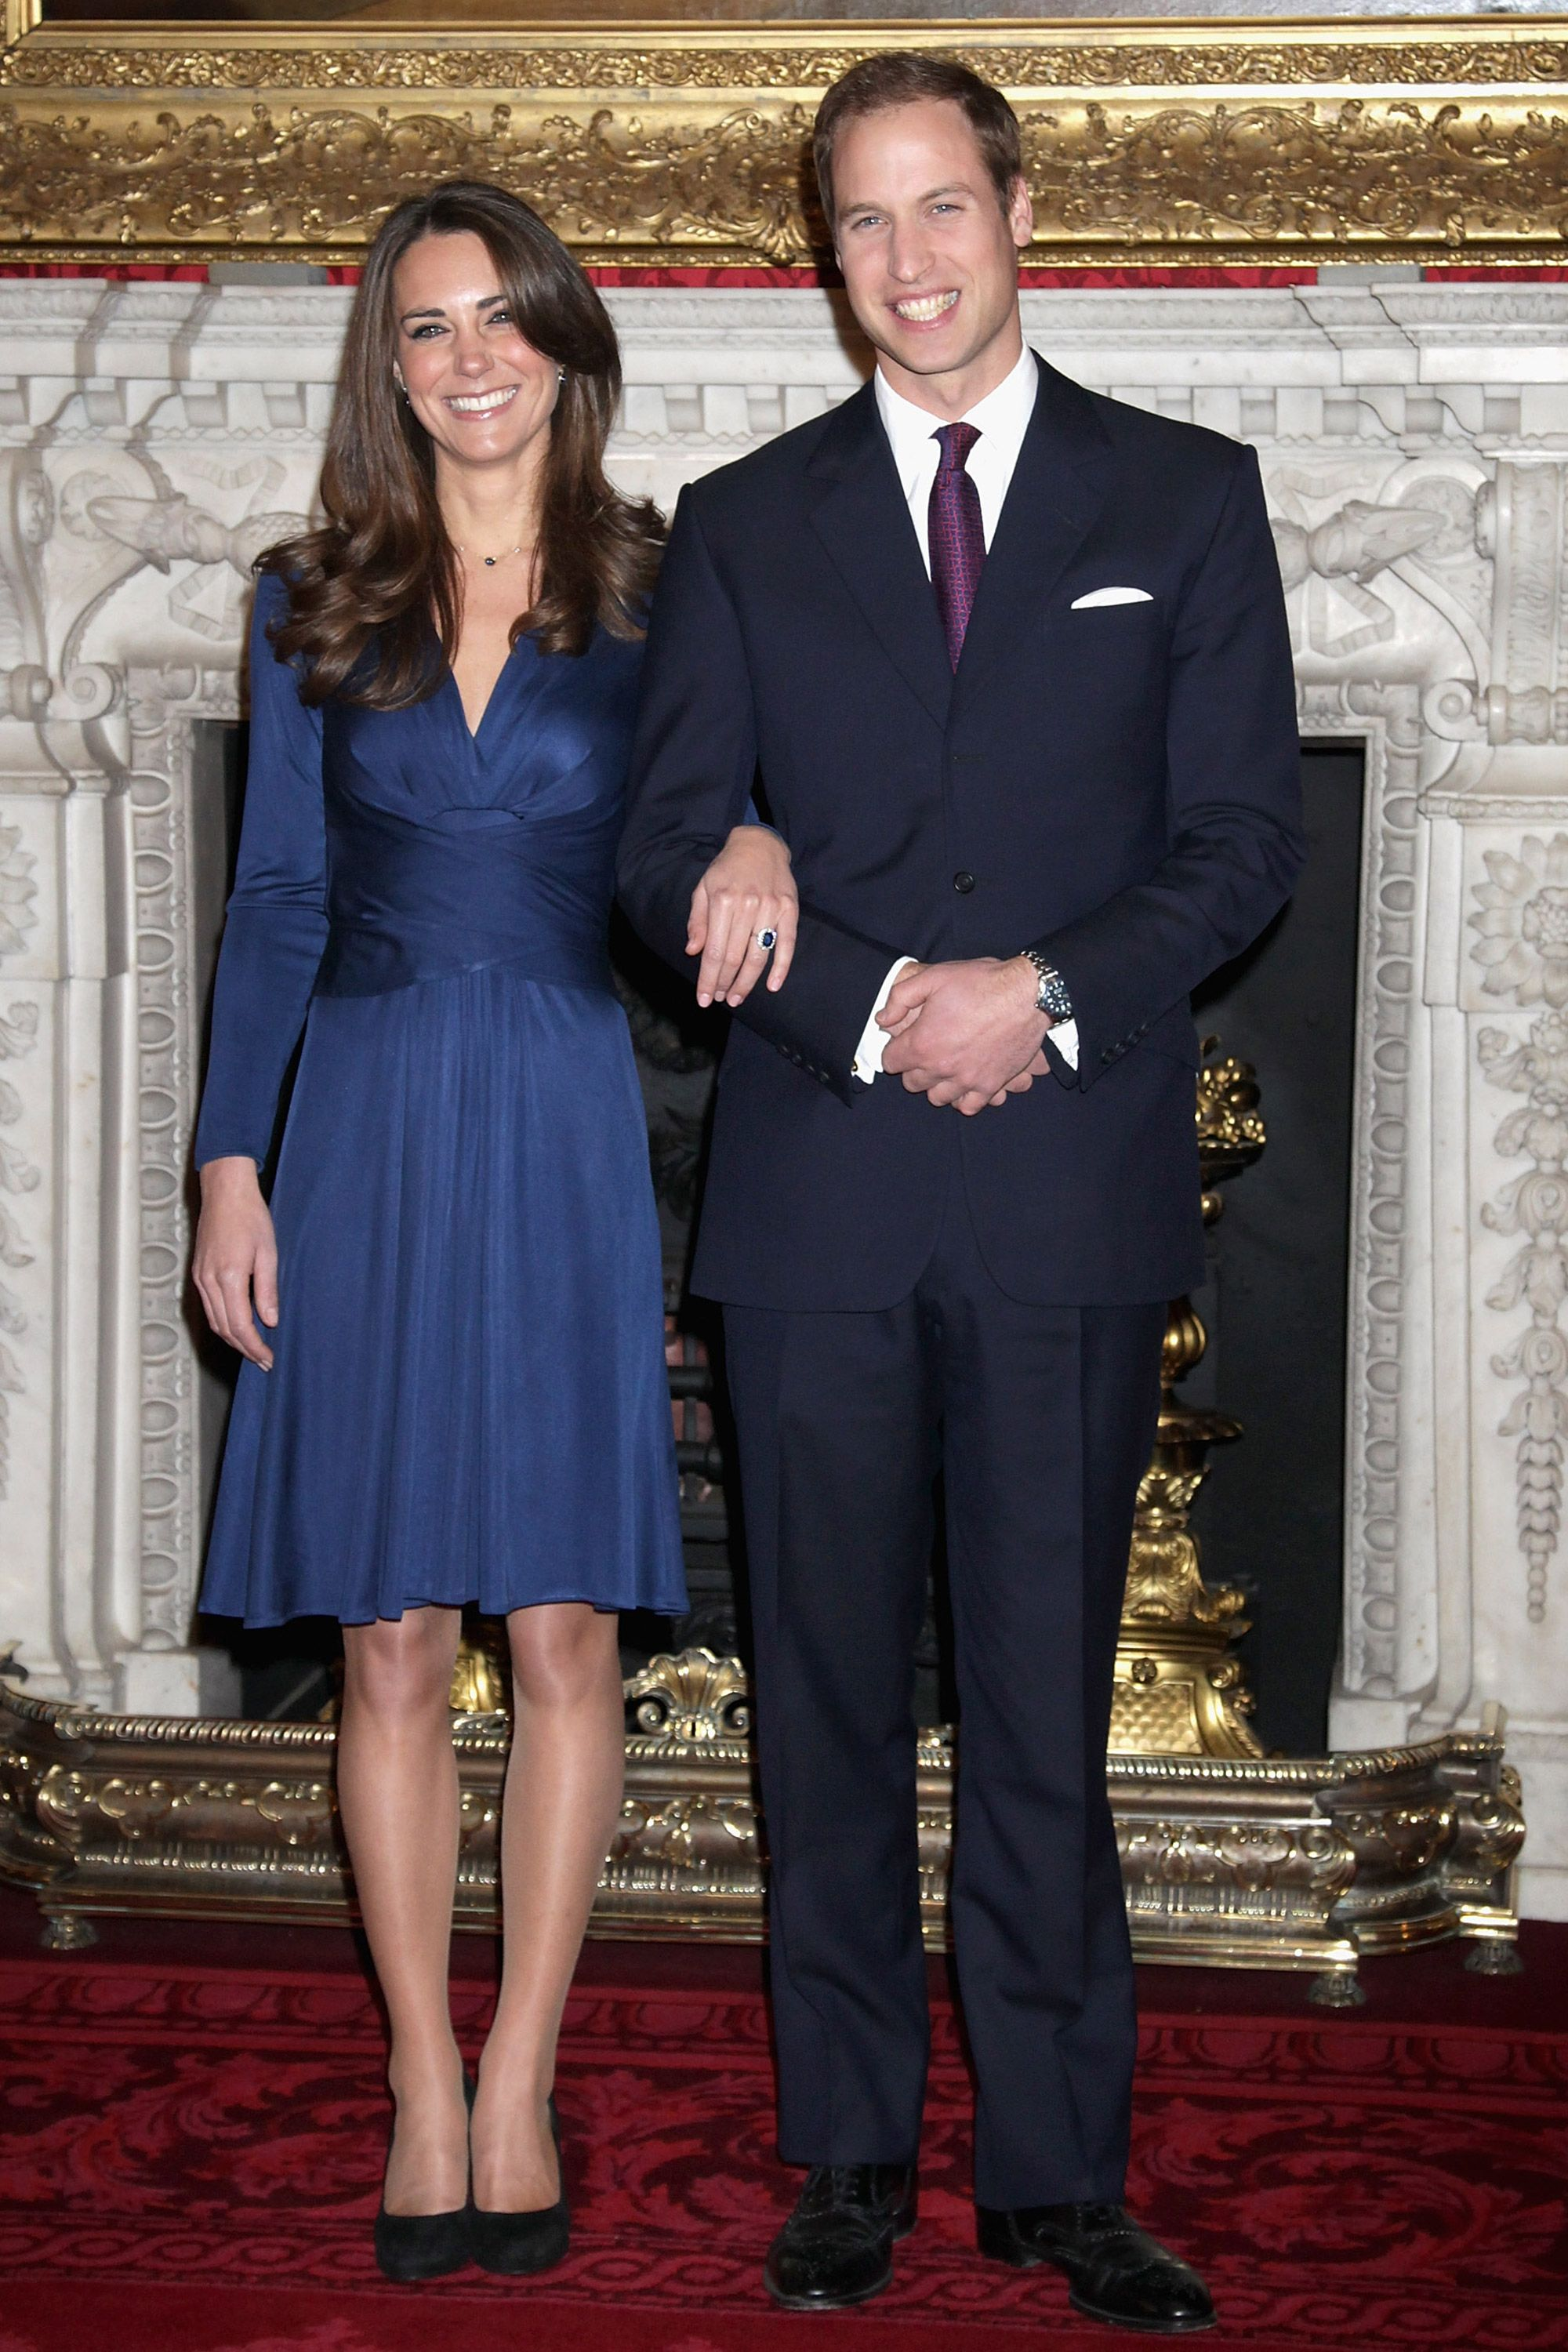 Kate Middletons Iconic Engagement Dress Is Now Super Affordable Kate Middletons Iconic Engagement Dress Is Now Super Affordable new foto